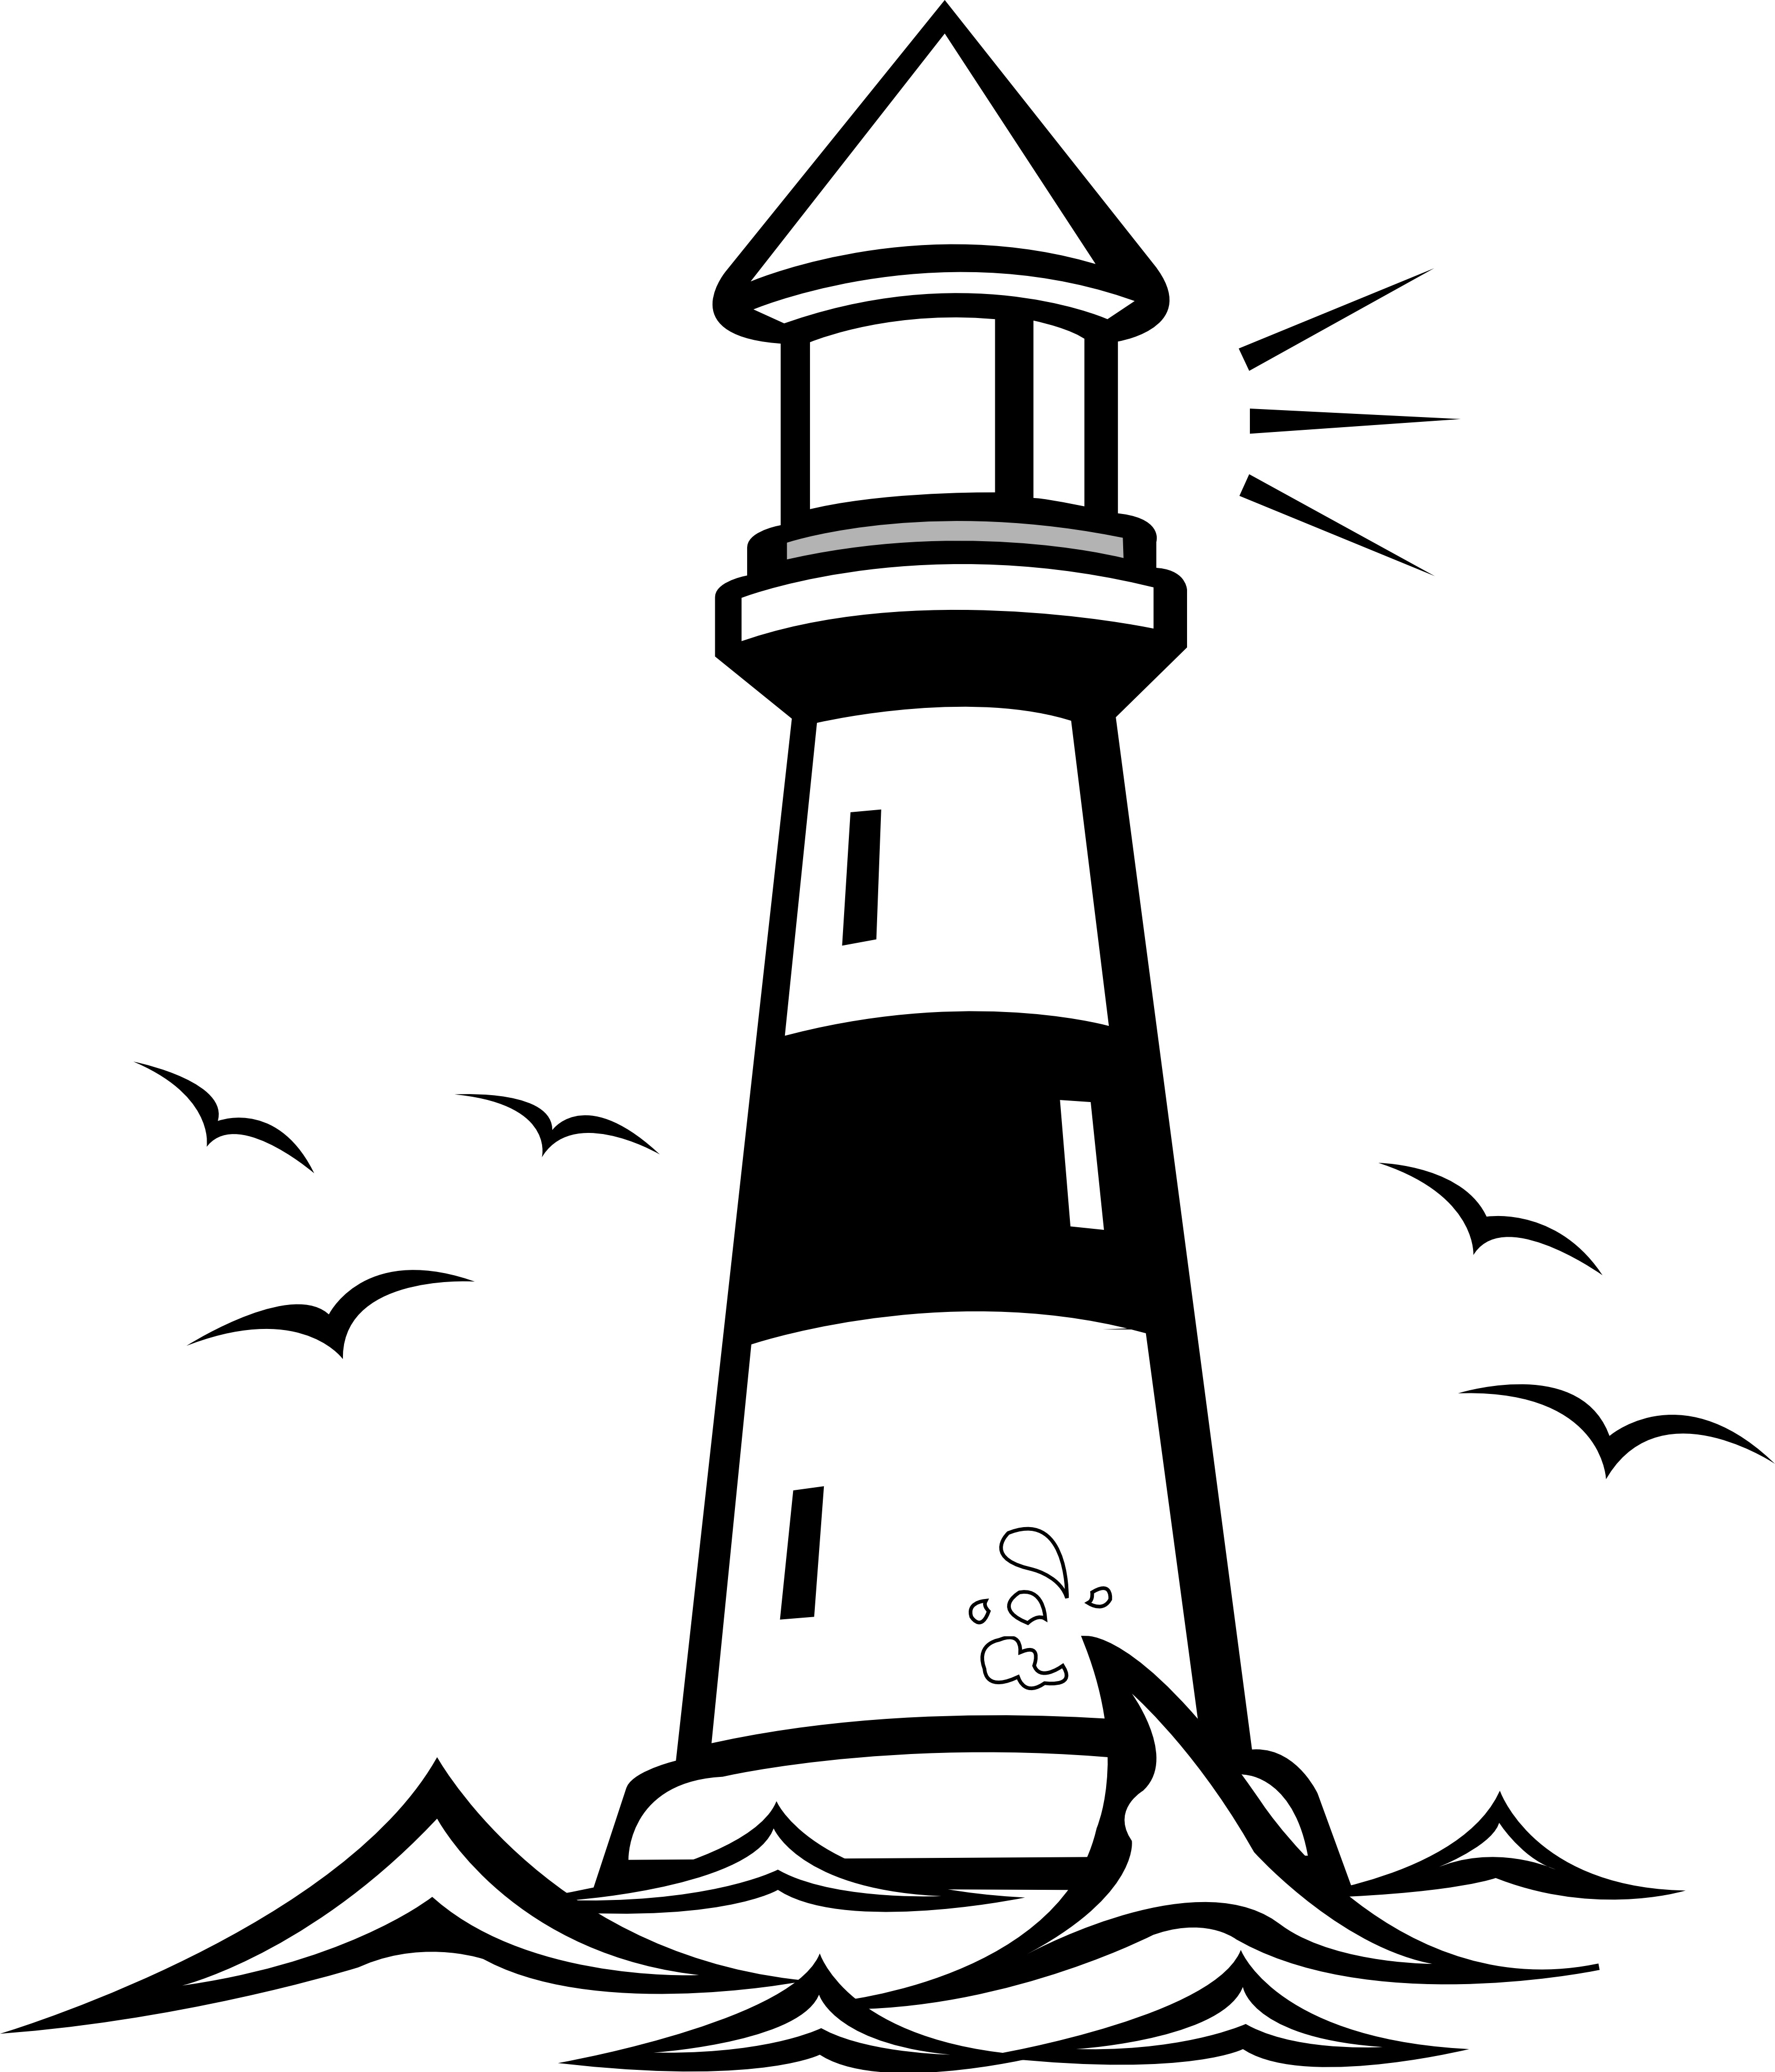 ighthouse clipart silhouette